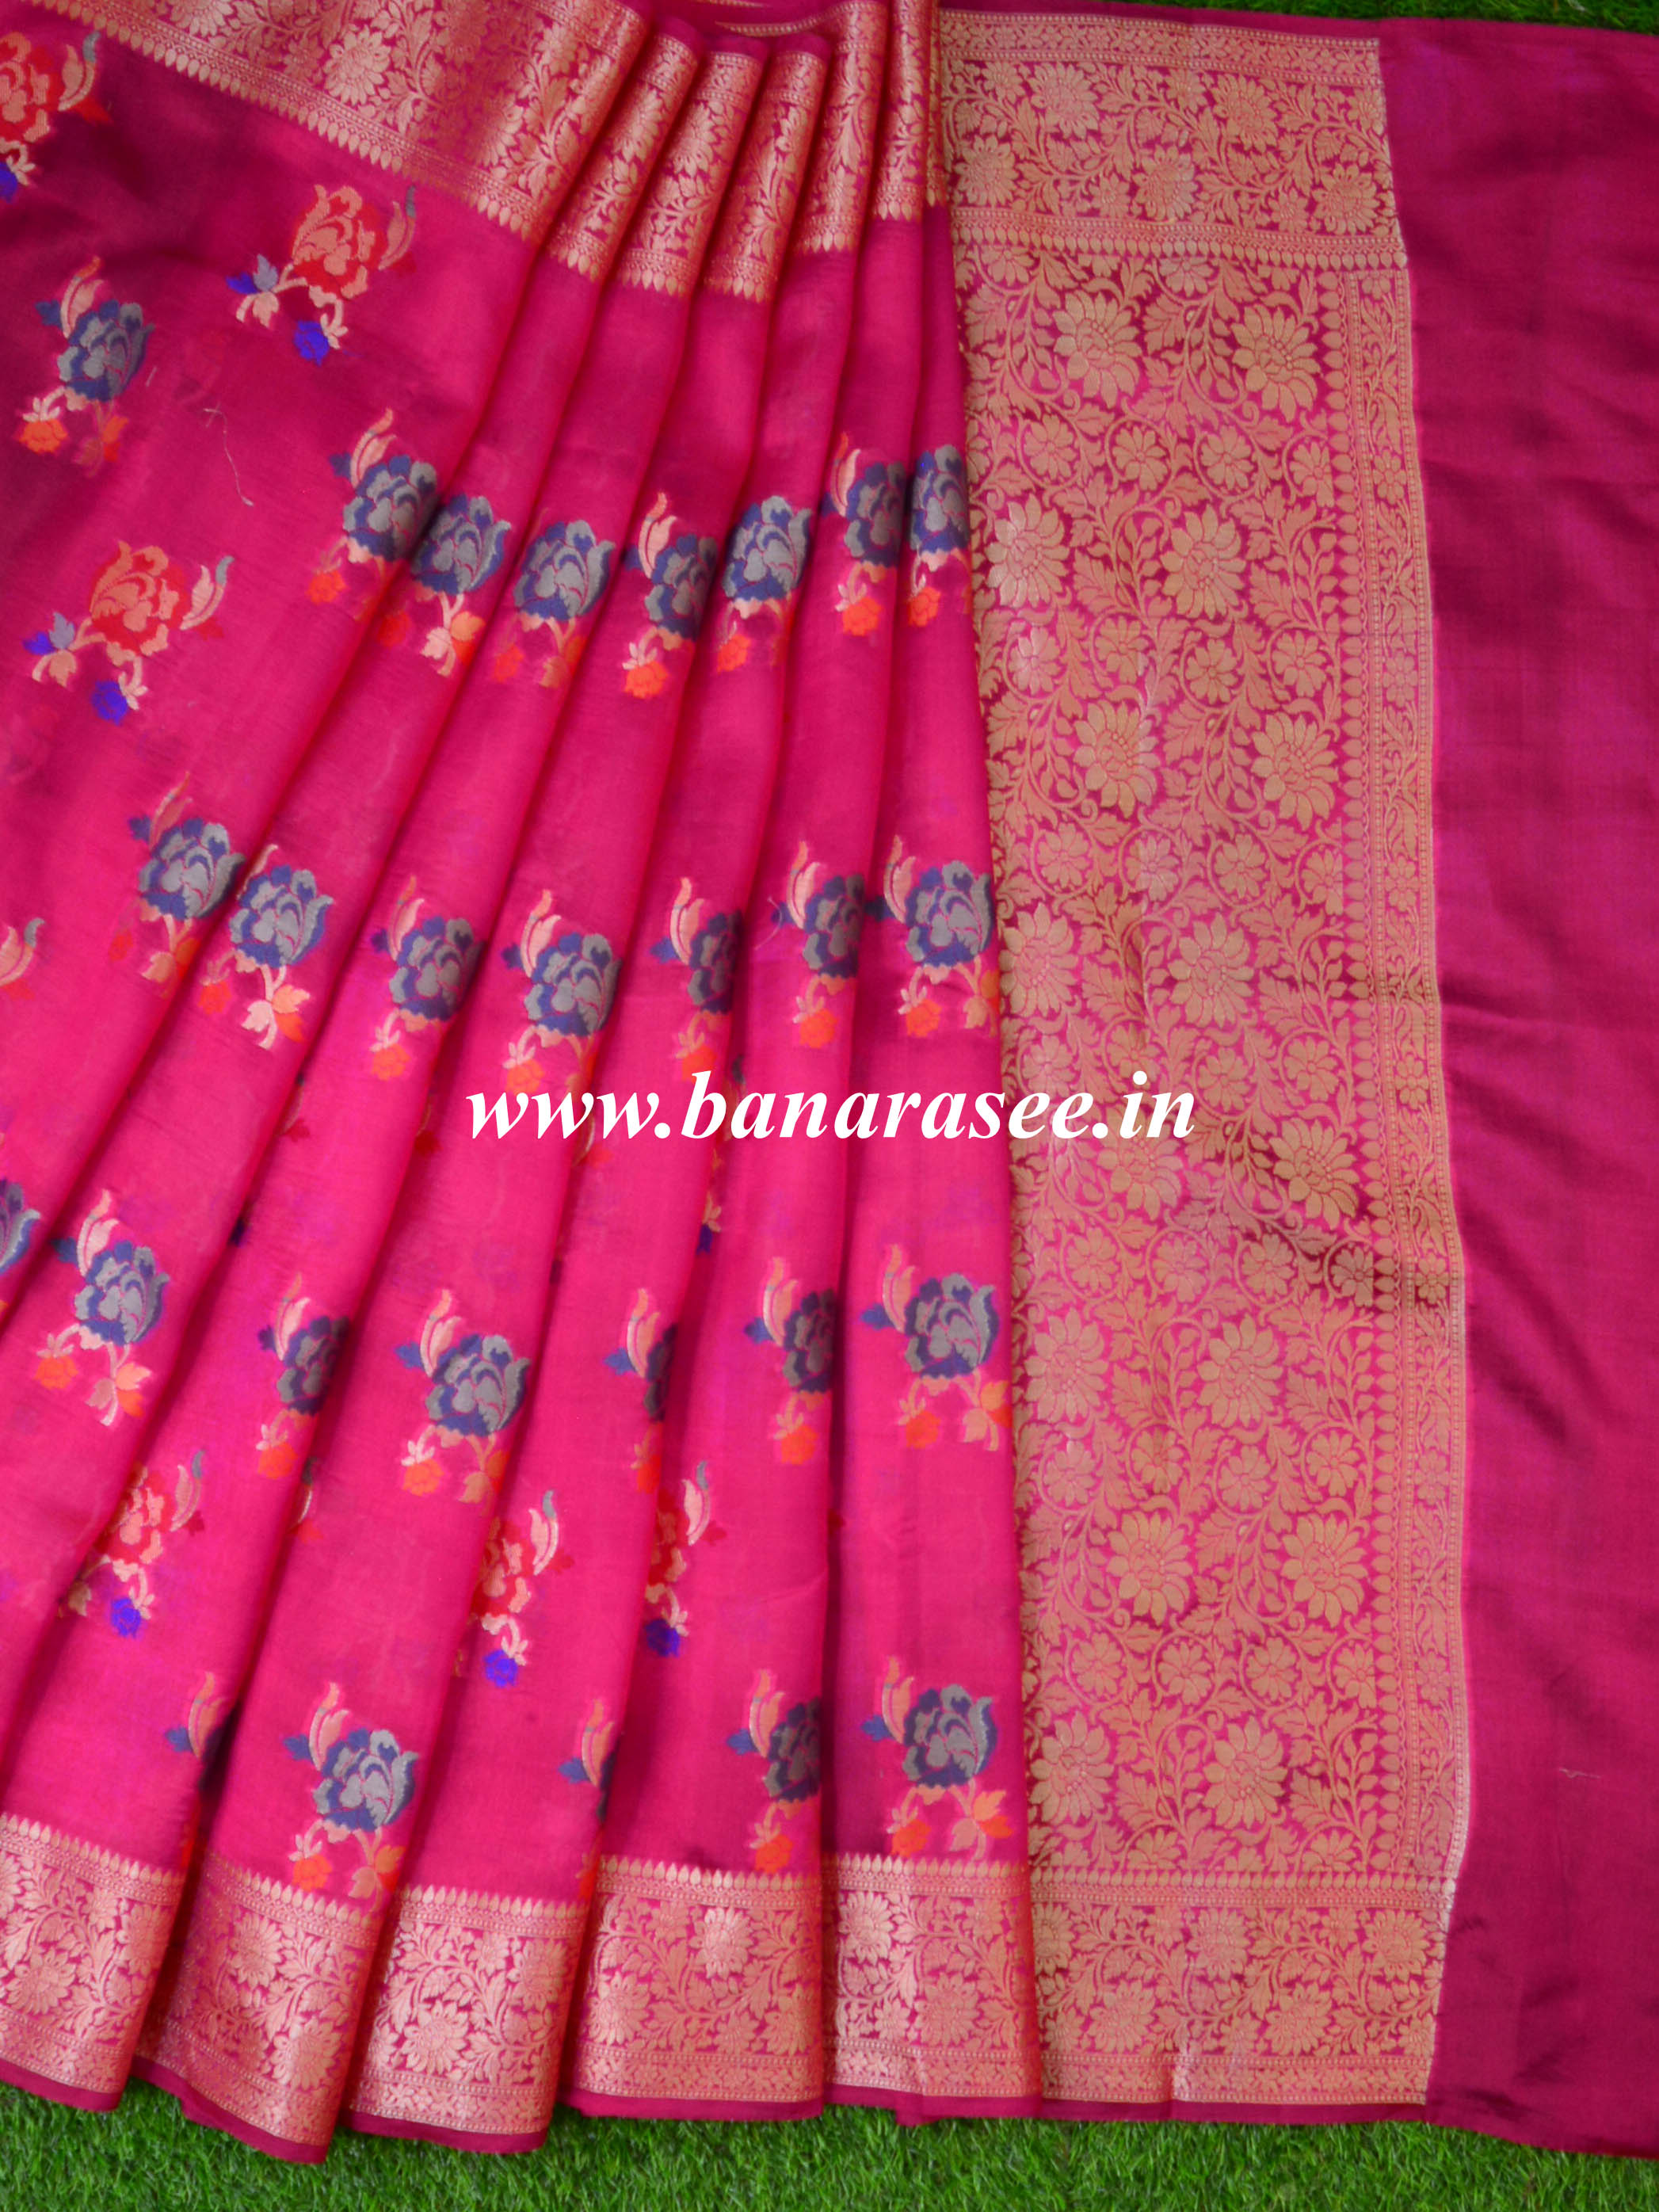 Banarasee Handloom Pure Dupion Silk Saree With Floral Buta Design-Pink